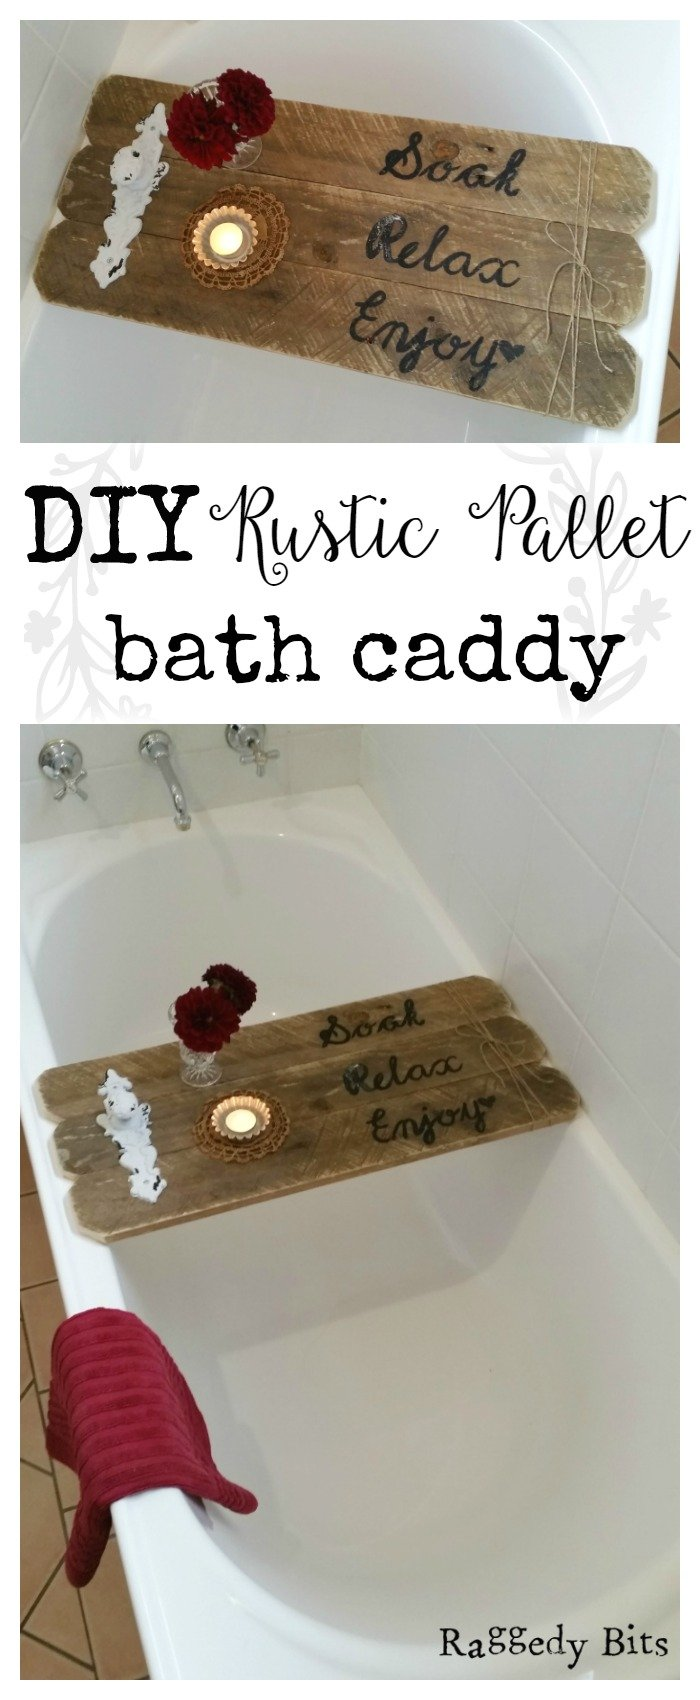 59 Incredibly Simple Rustic Décor Ideas That Can Make Your: DIY Rustic Pallet Bath Caddy